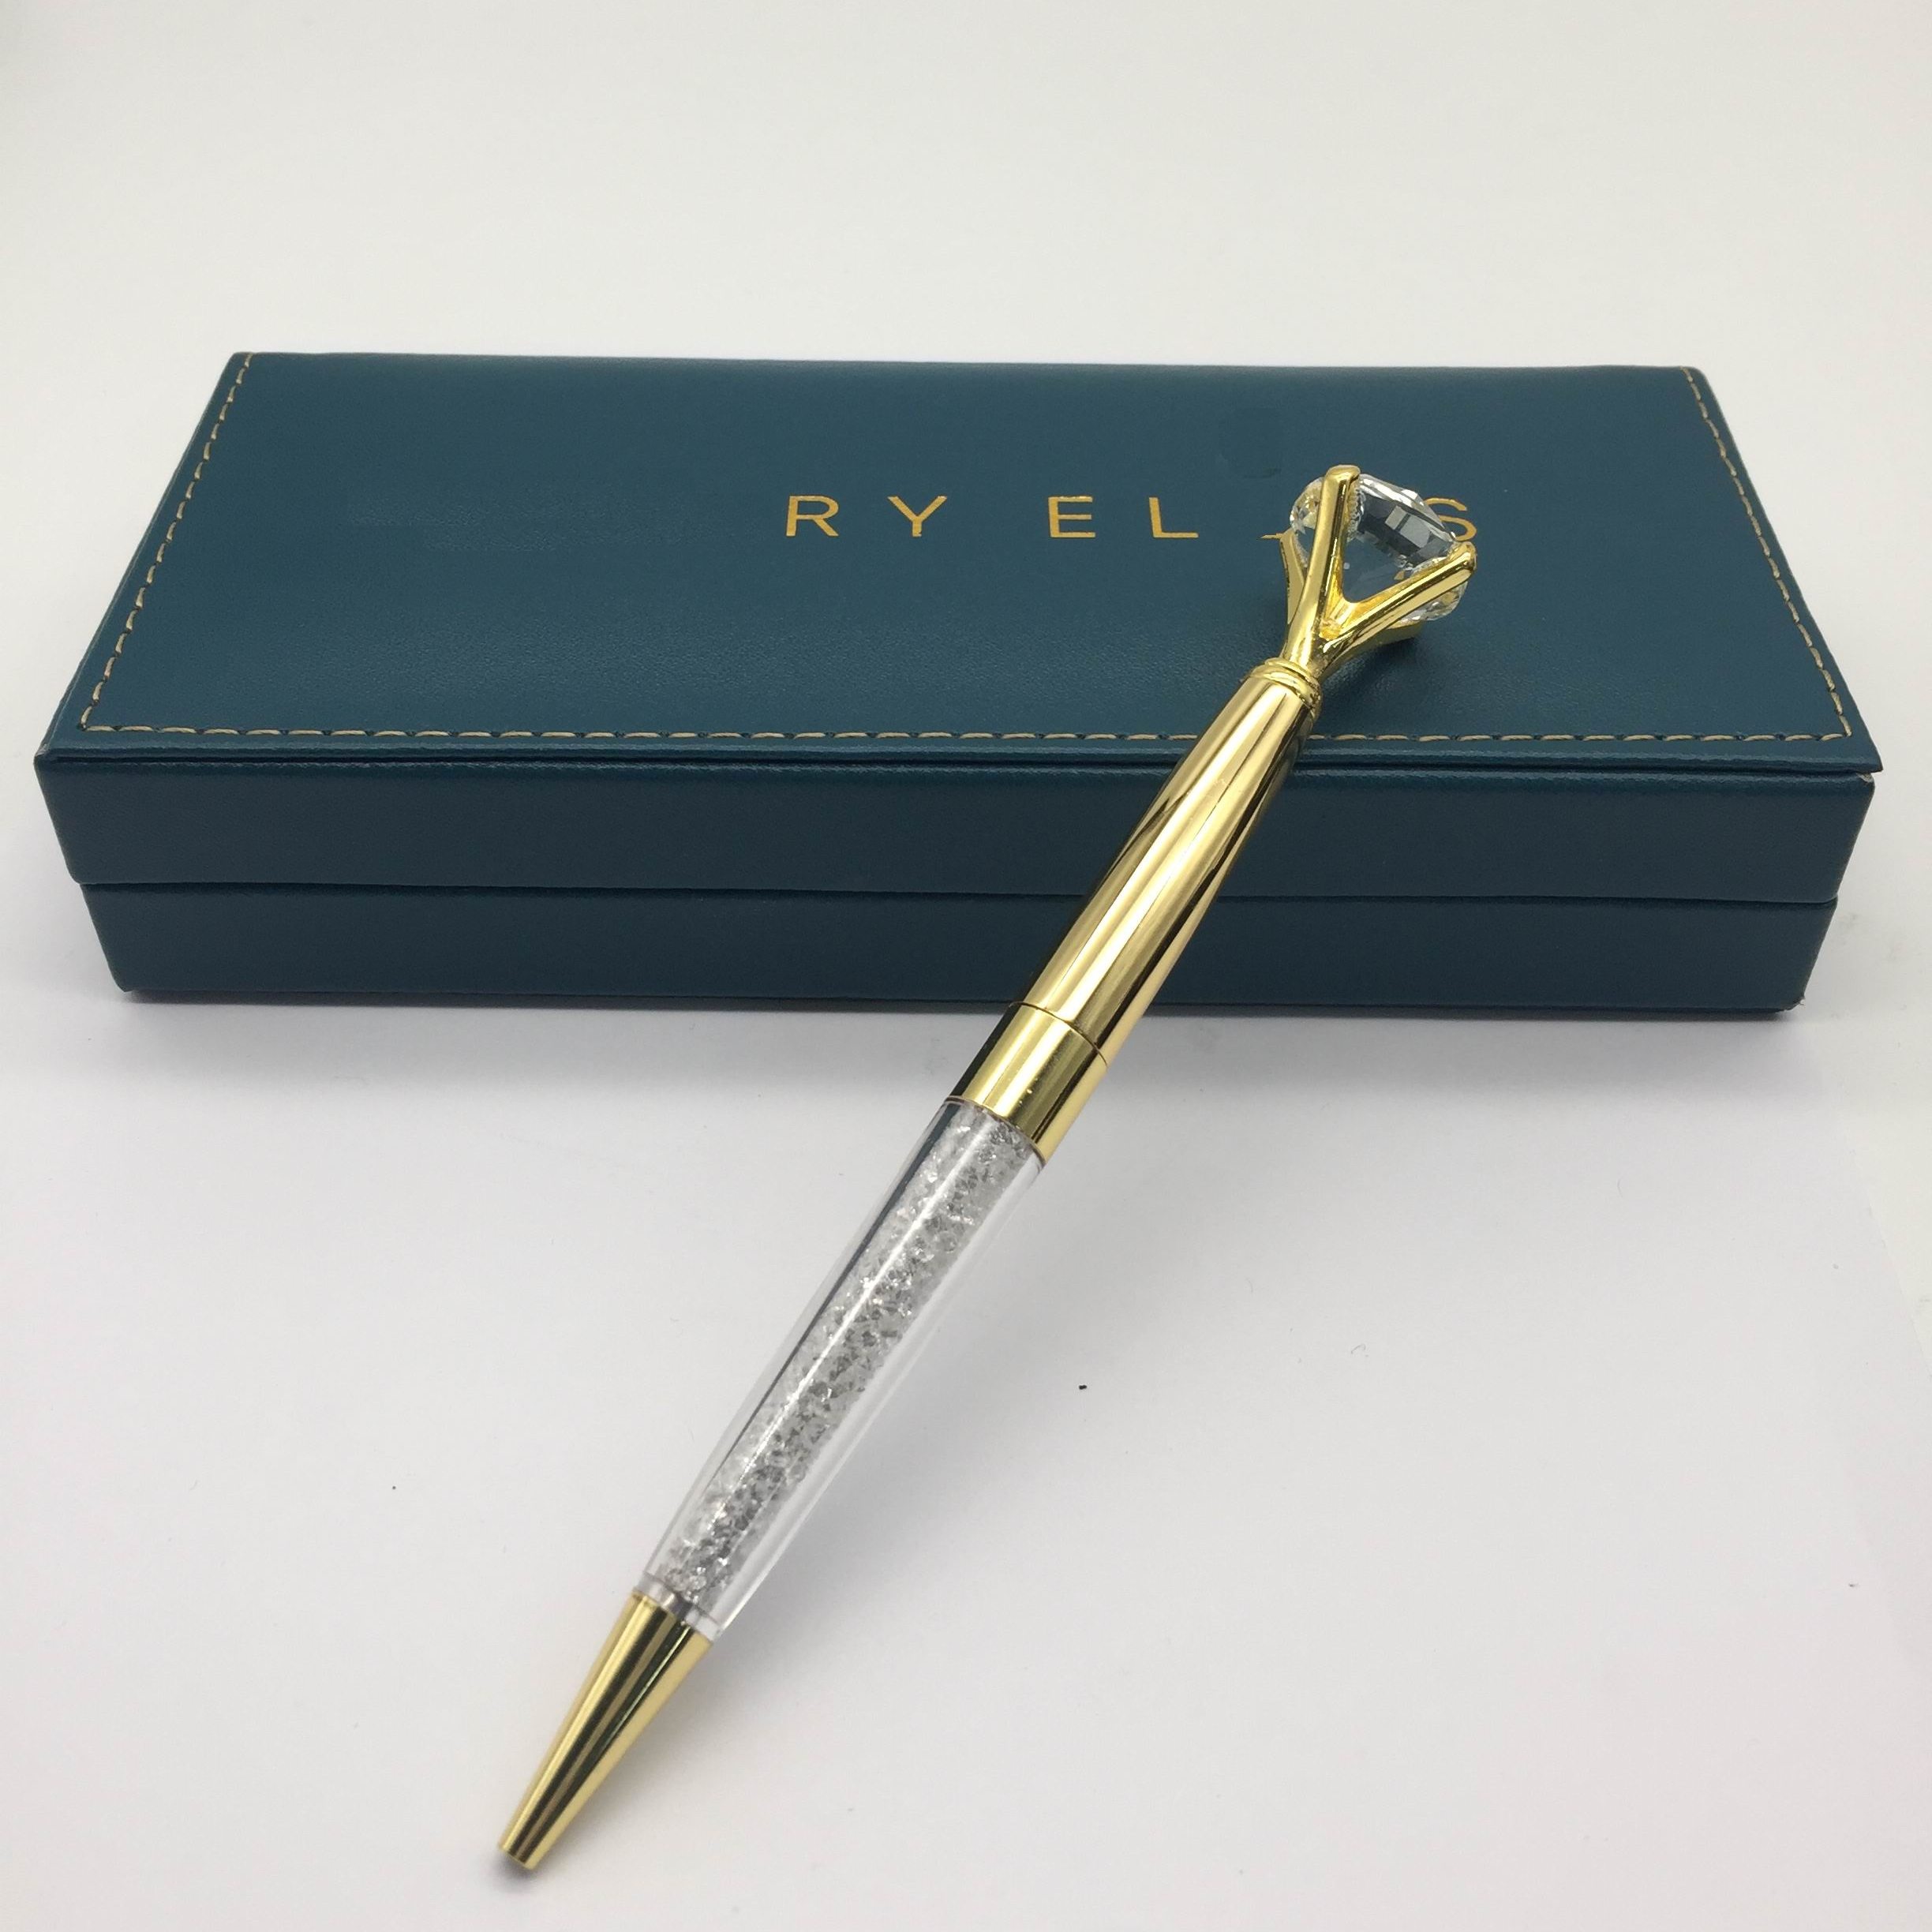 Diamond pen rose gold crystal pen metal pen <strong>promotion</strong> with box